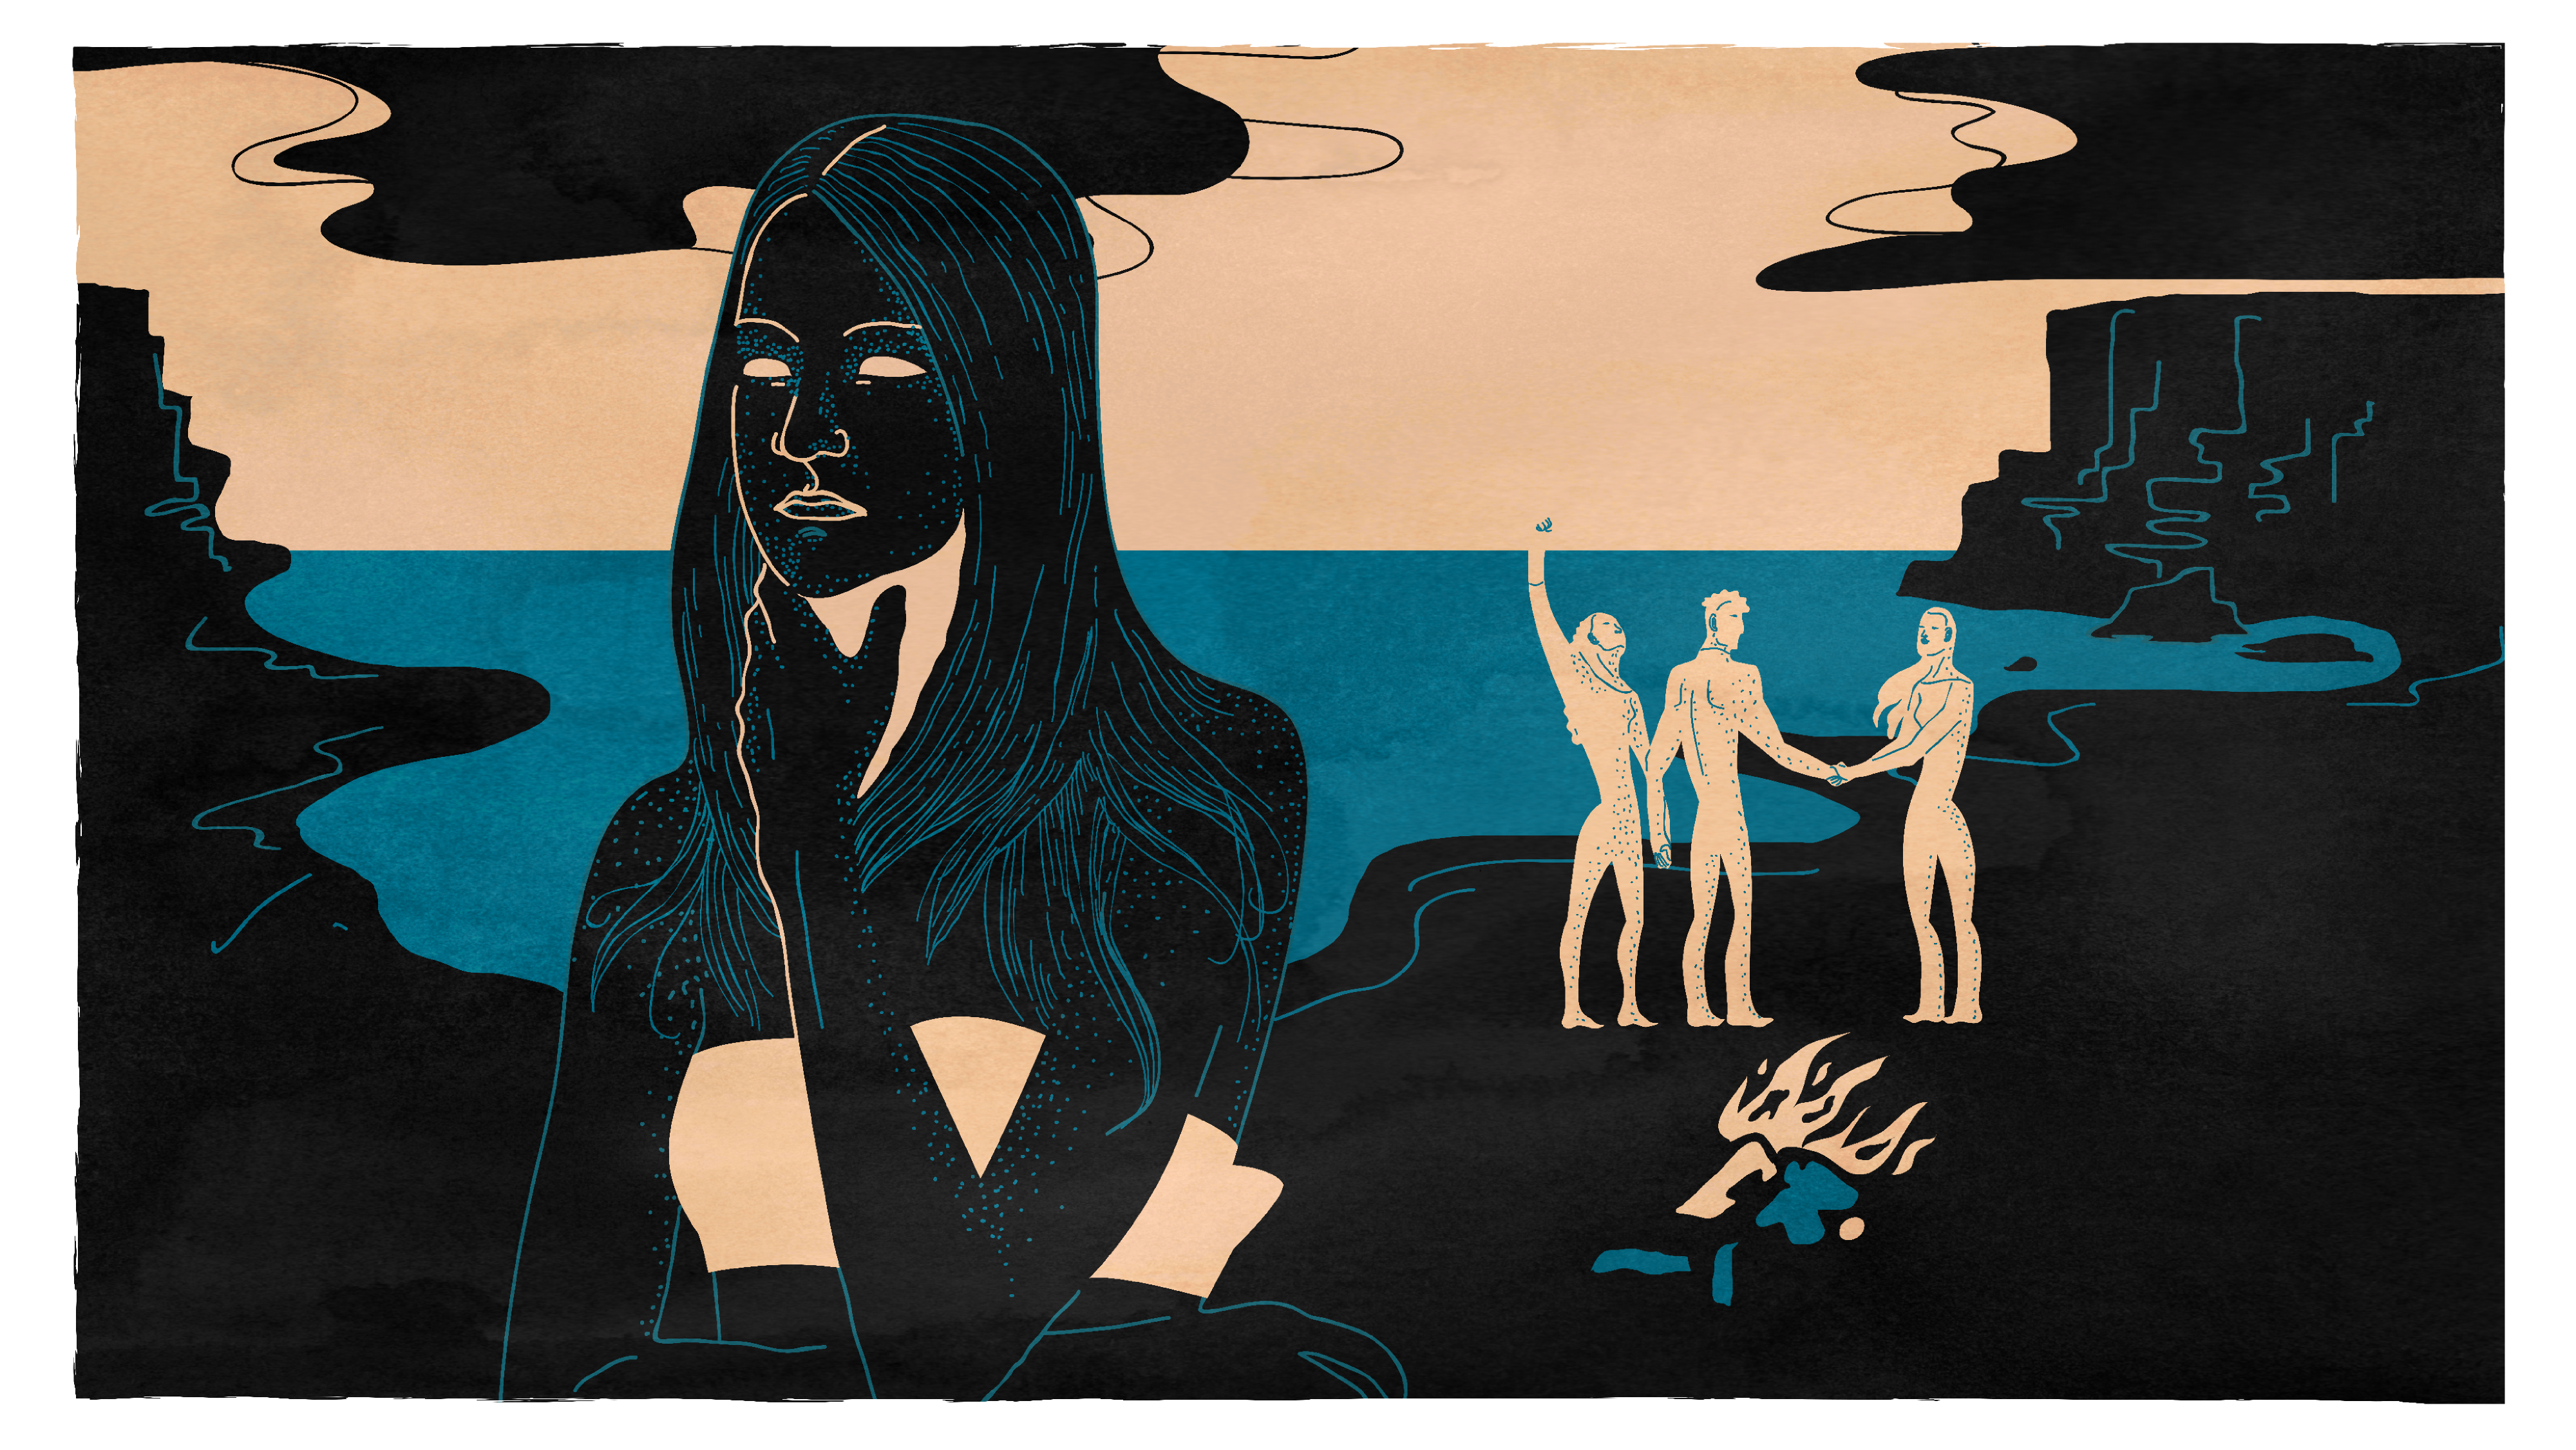 Simple three-color drawing of a woman deep in thought, with three strong figures in the background, near a fire on a beach